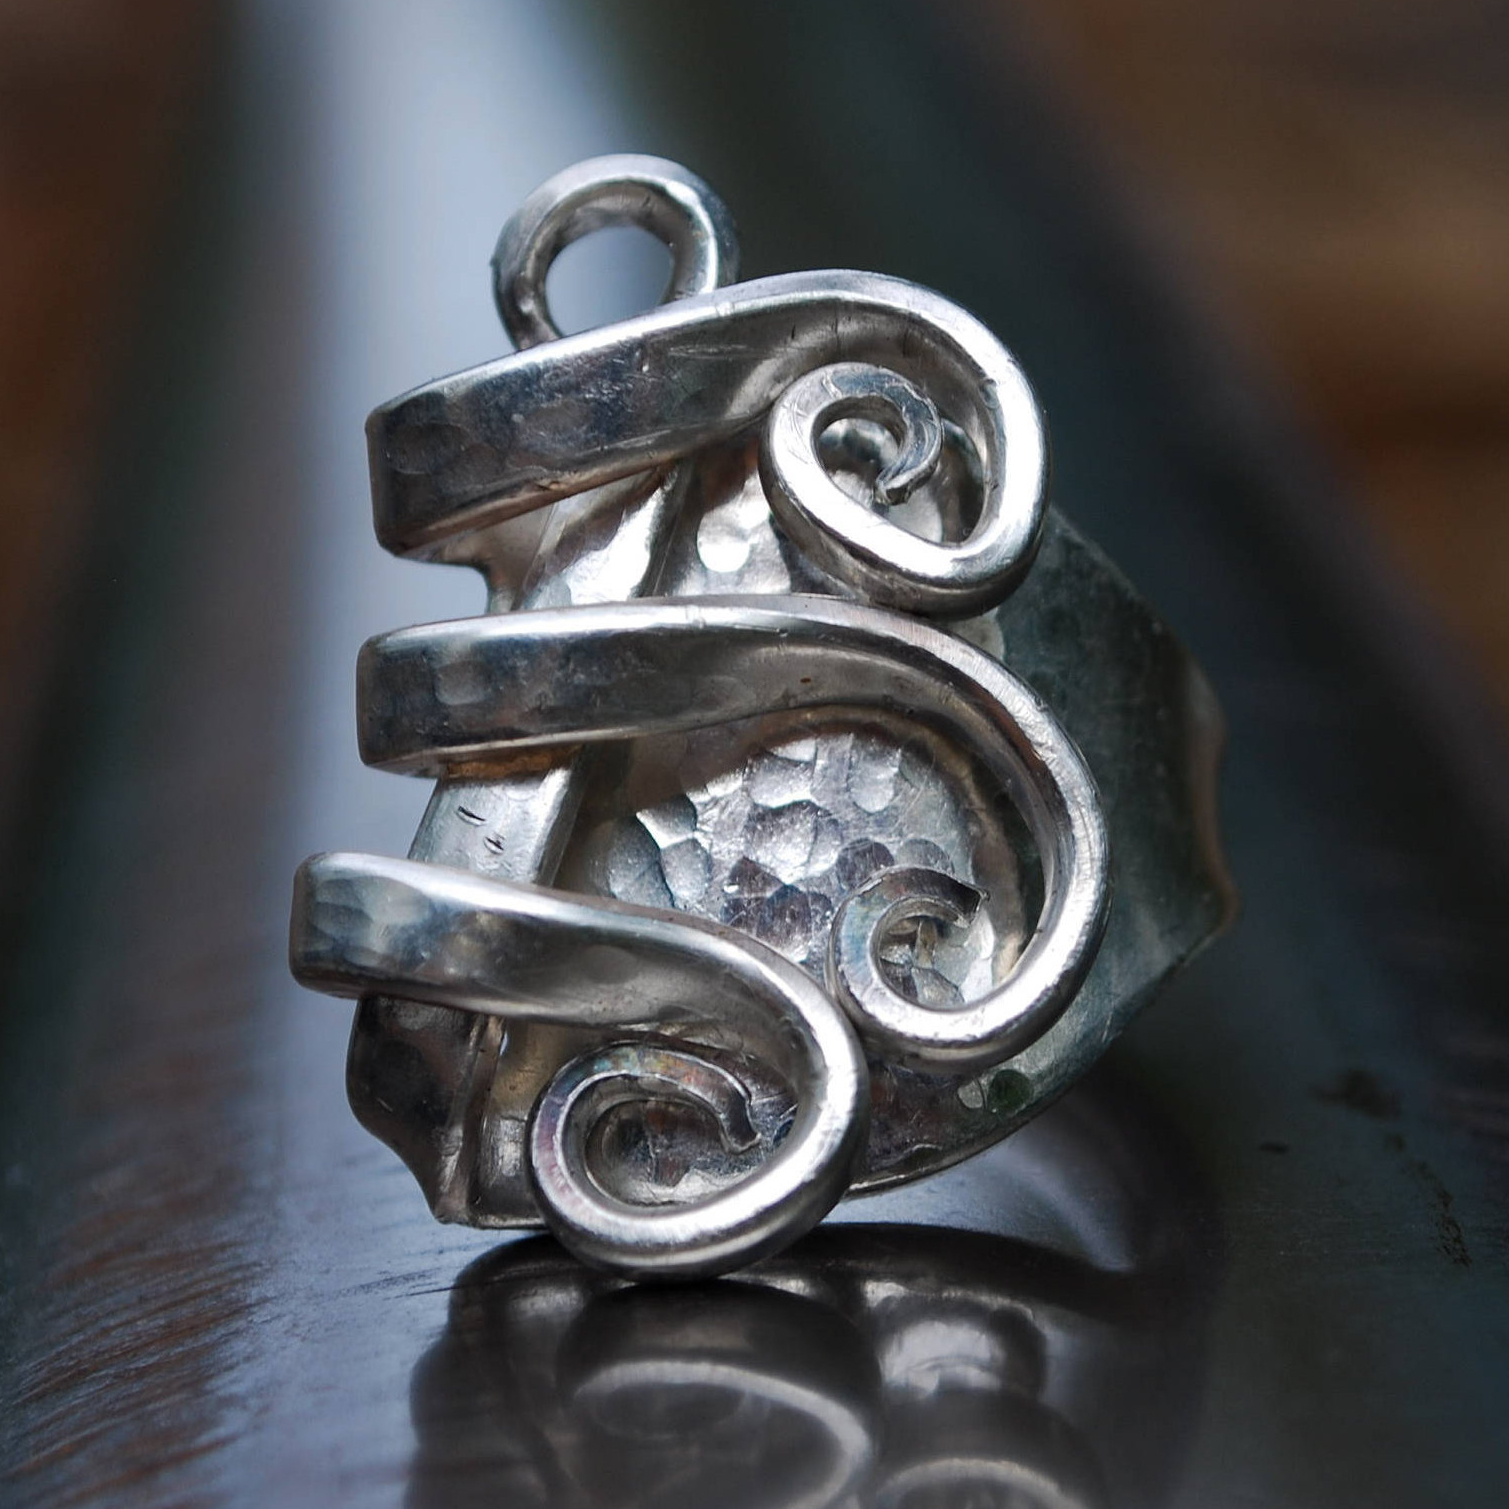 salvage 001 - wave fork ring.jpg